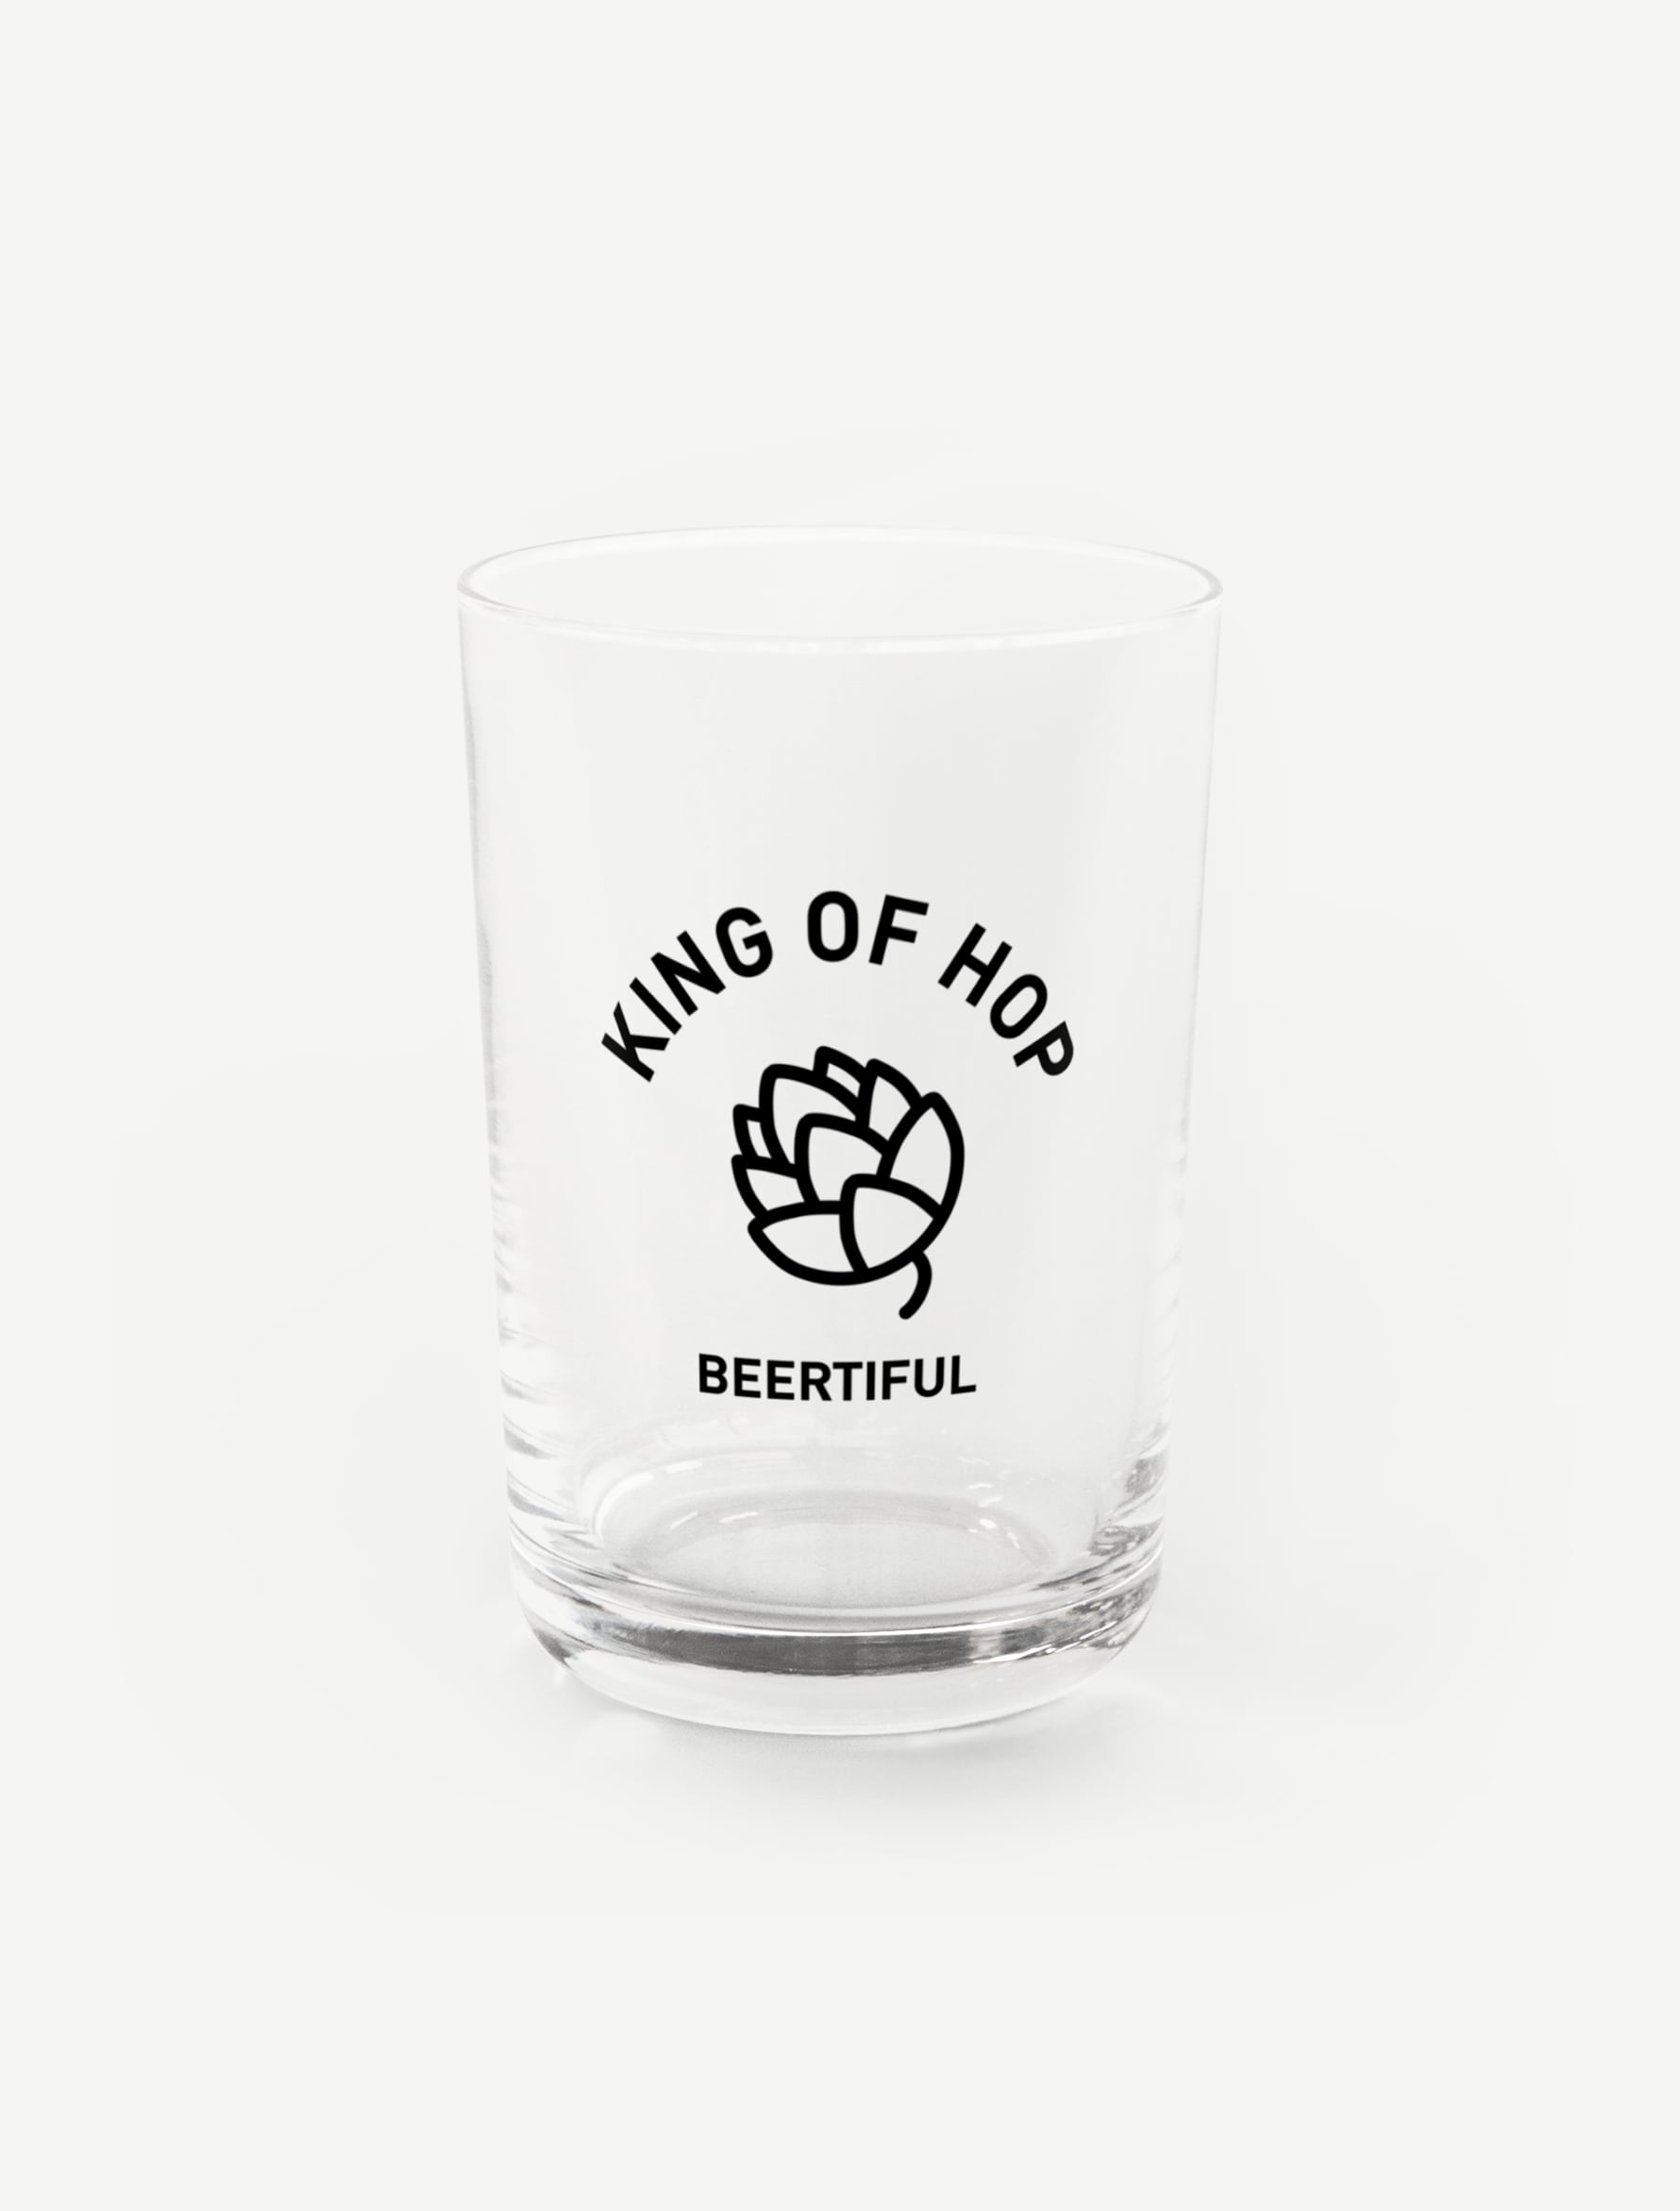 【KING OF HOP】グラス